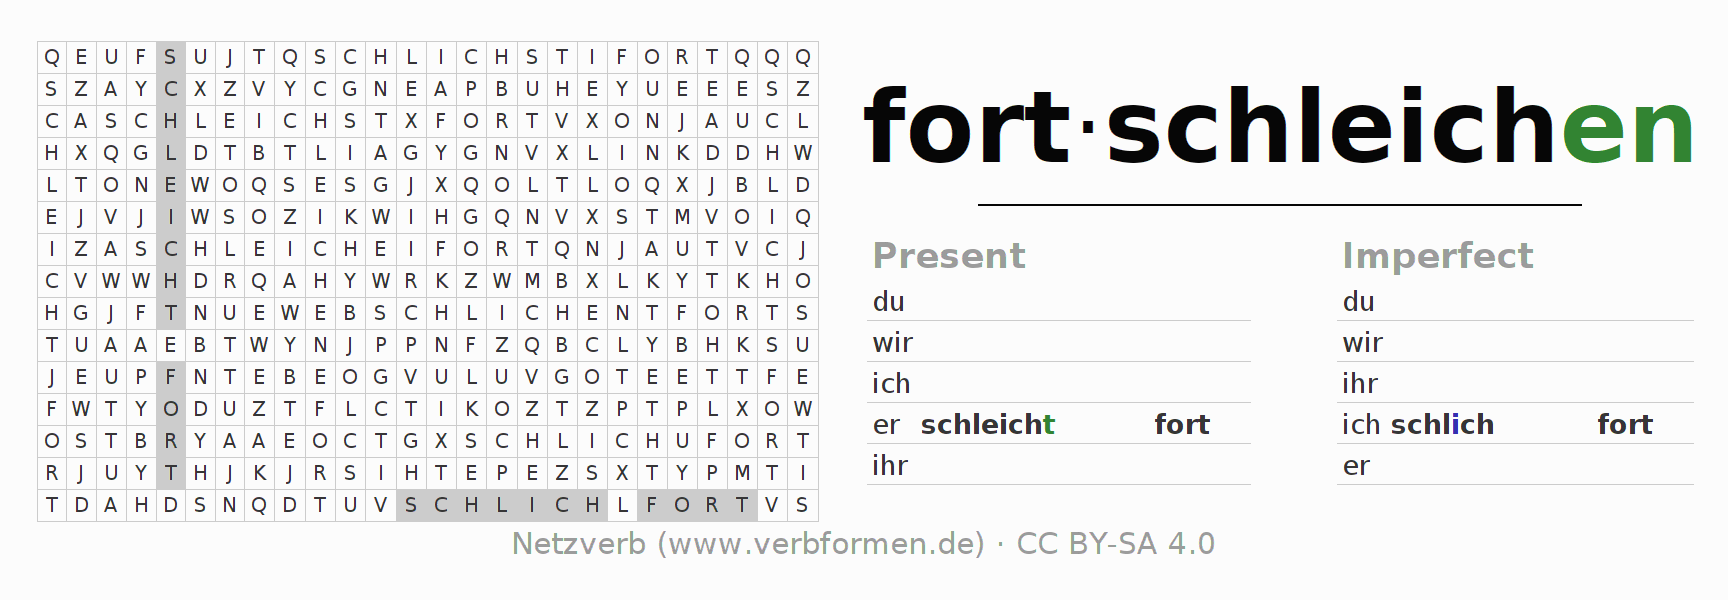 Word search puzzle for the conjugation of the verb fortschleichen (ist)